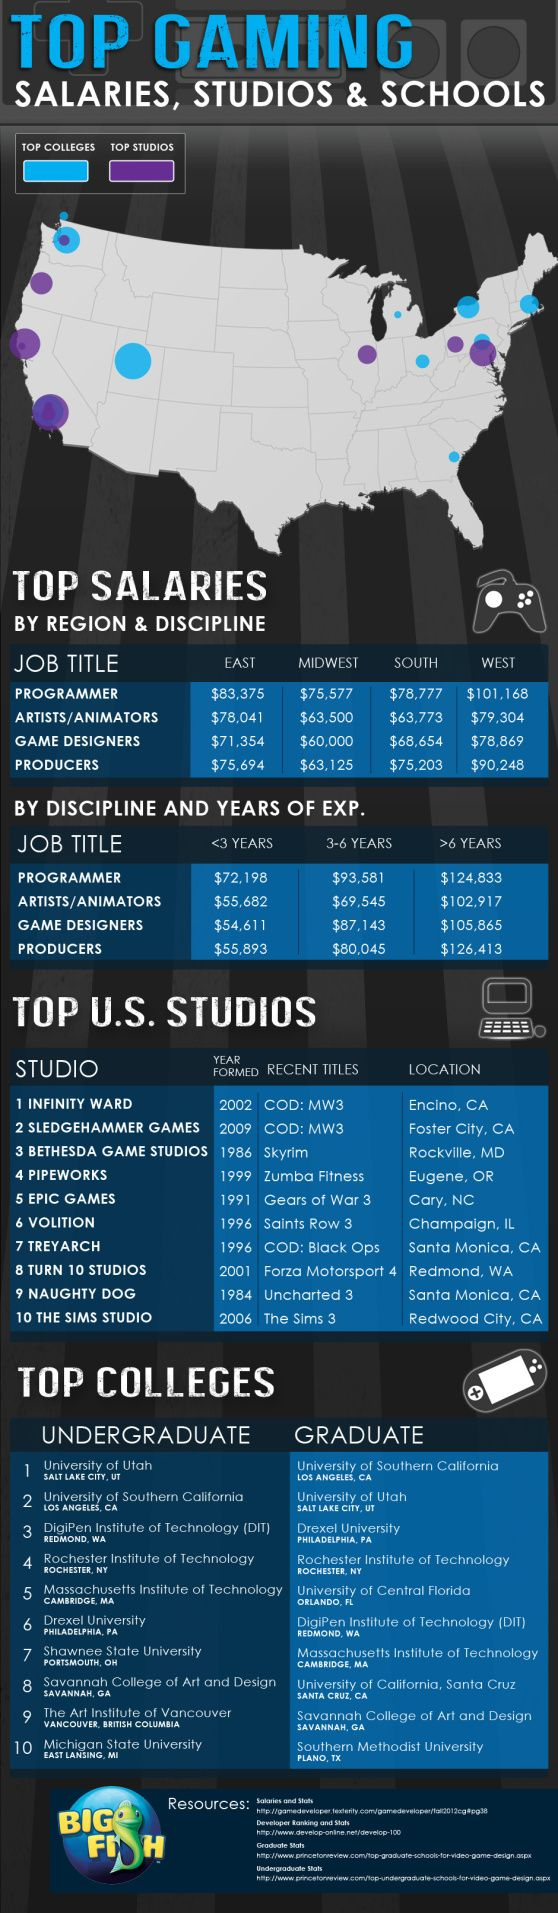 Top gaming colleges.